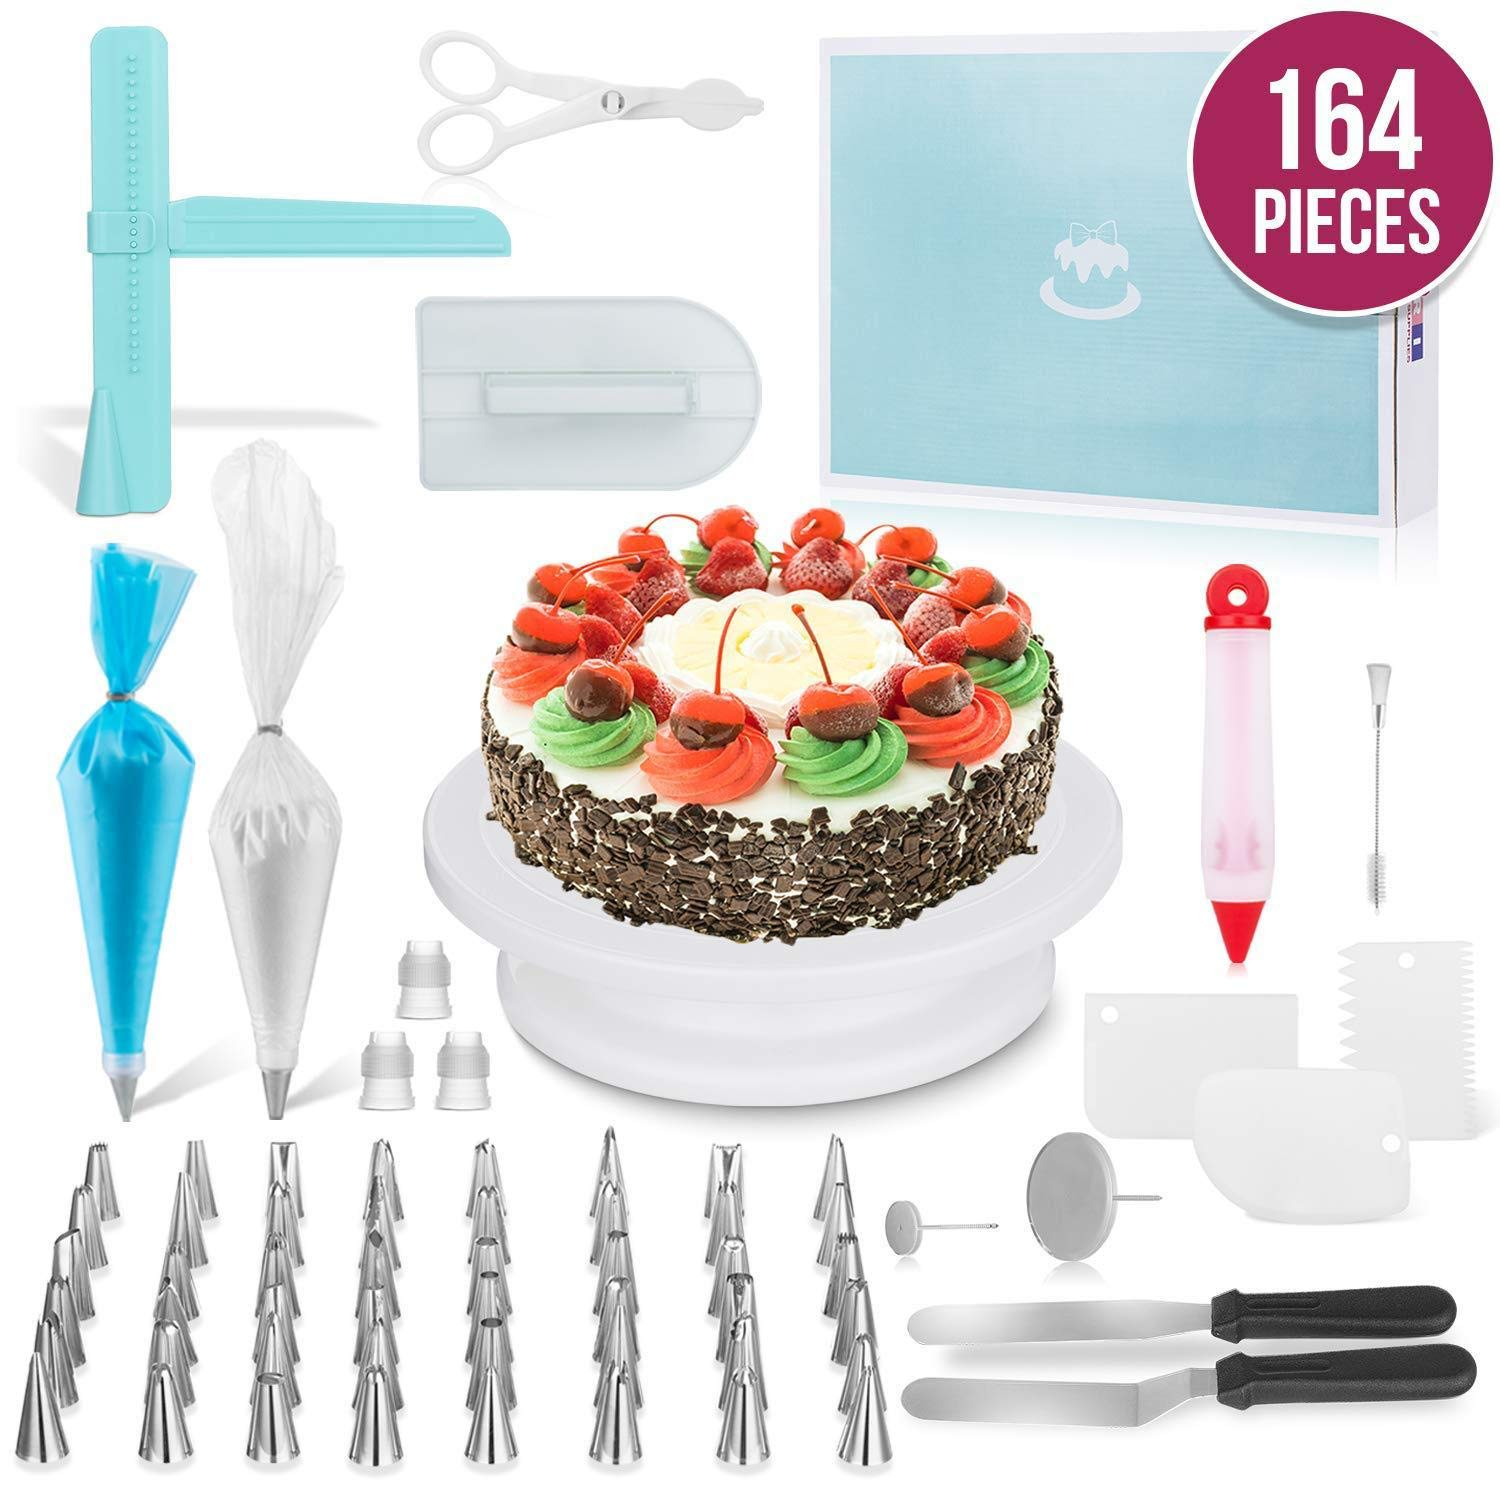 CCOOL 164-Piece Cake Decorating Supplies Tips Kits Stainless Steel Baking Supplies Icing Tips with Pastry Bags